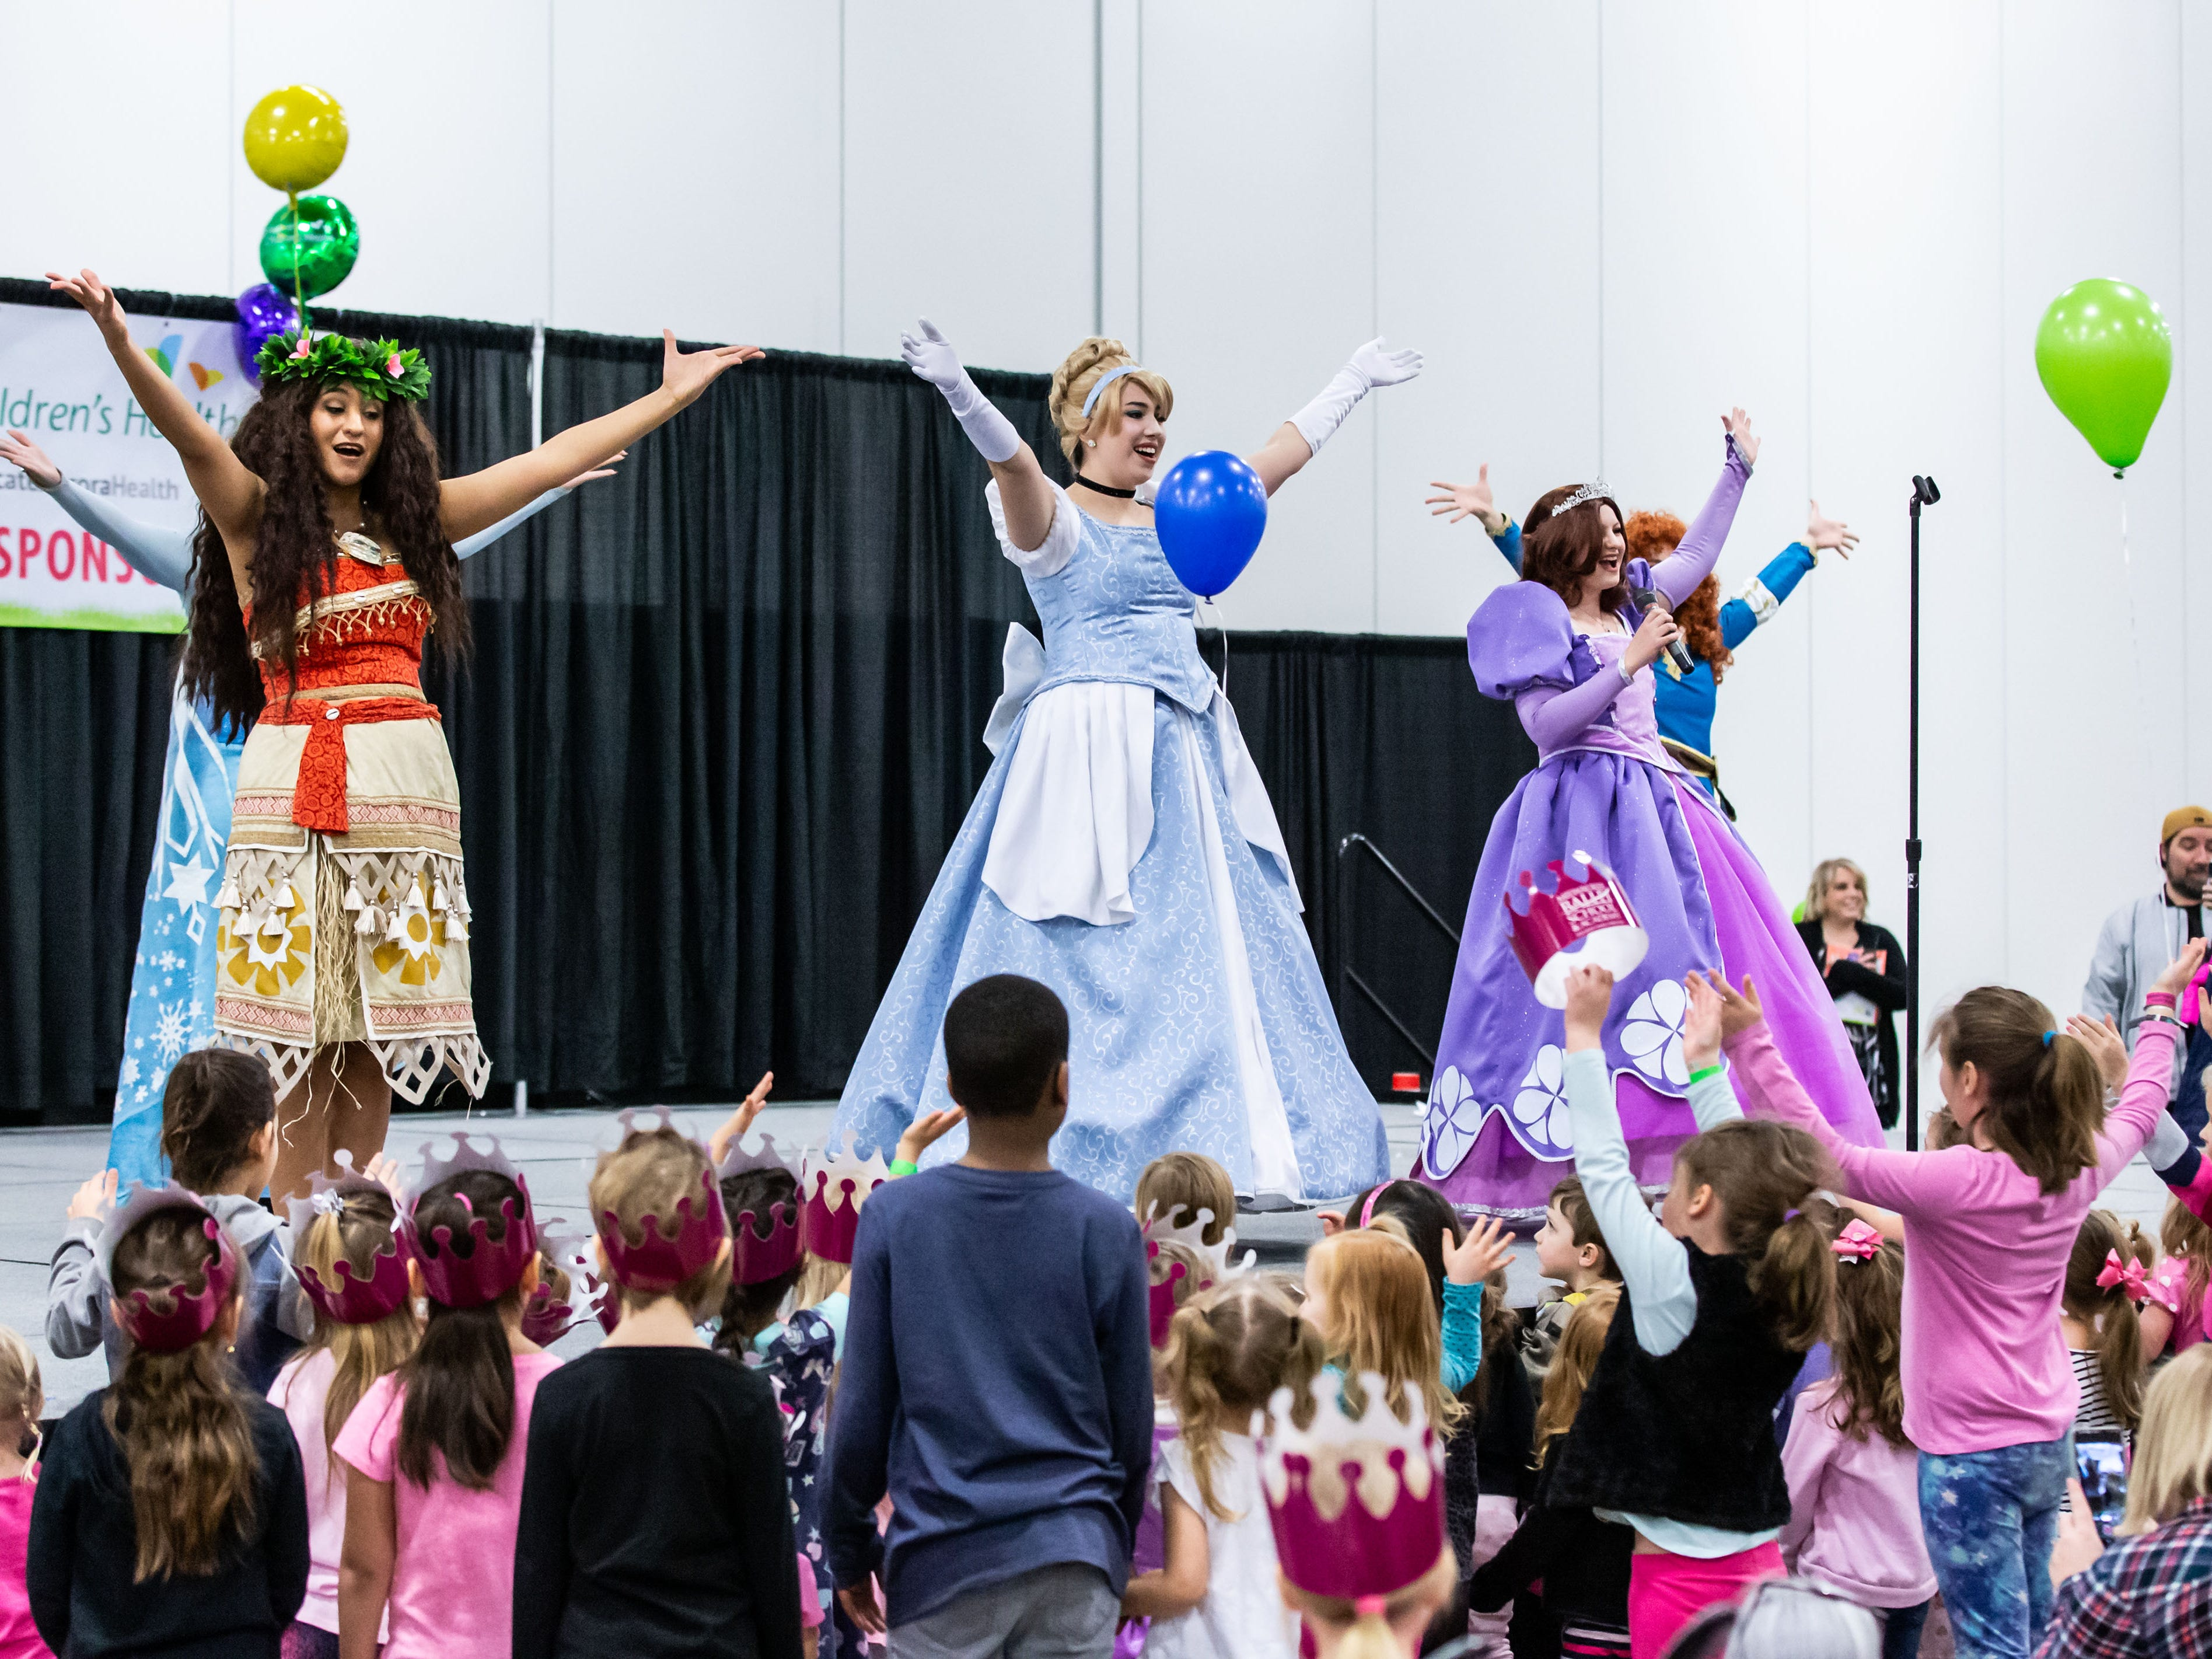 The Fairytale Birthday Company Princesses perform on the main stage during the Milwaukee Kids Expo at State Fair Park in West Allis on Sunday, Feb. 10, 2019. The two-day expo featured bounce houses, a petting zoo, a rock climbing wall, pony rides, caricature paintings, a maze challenge and much more.